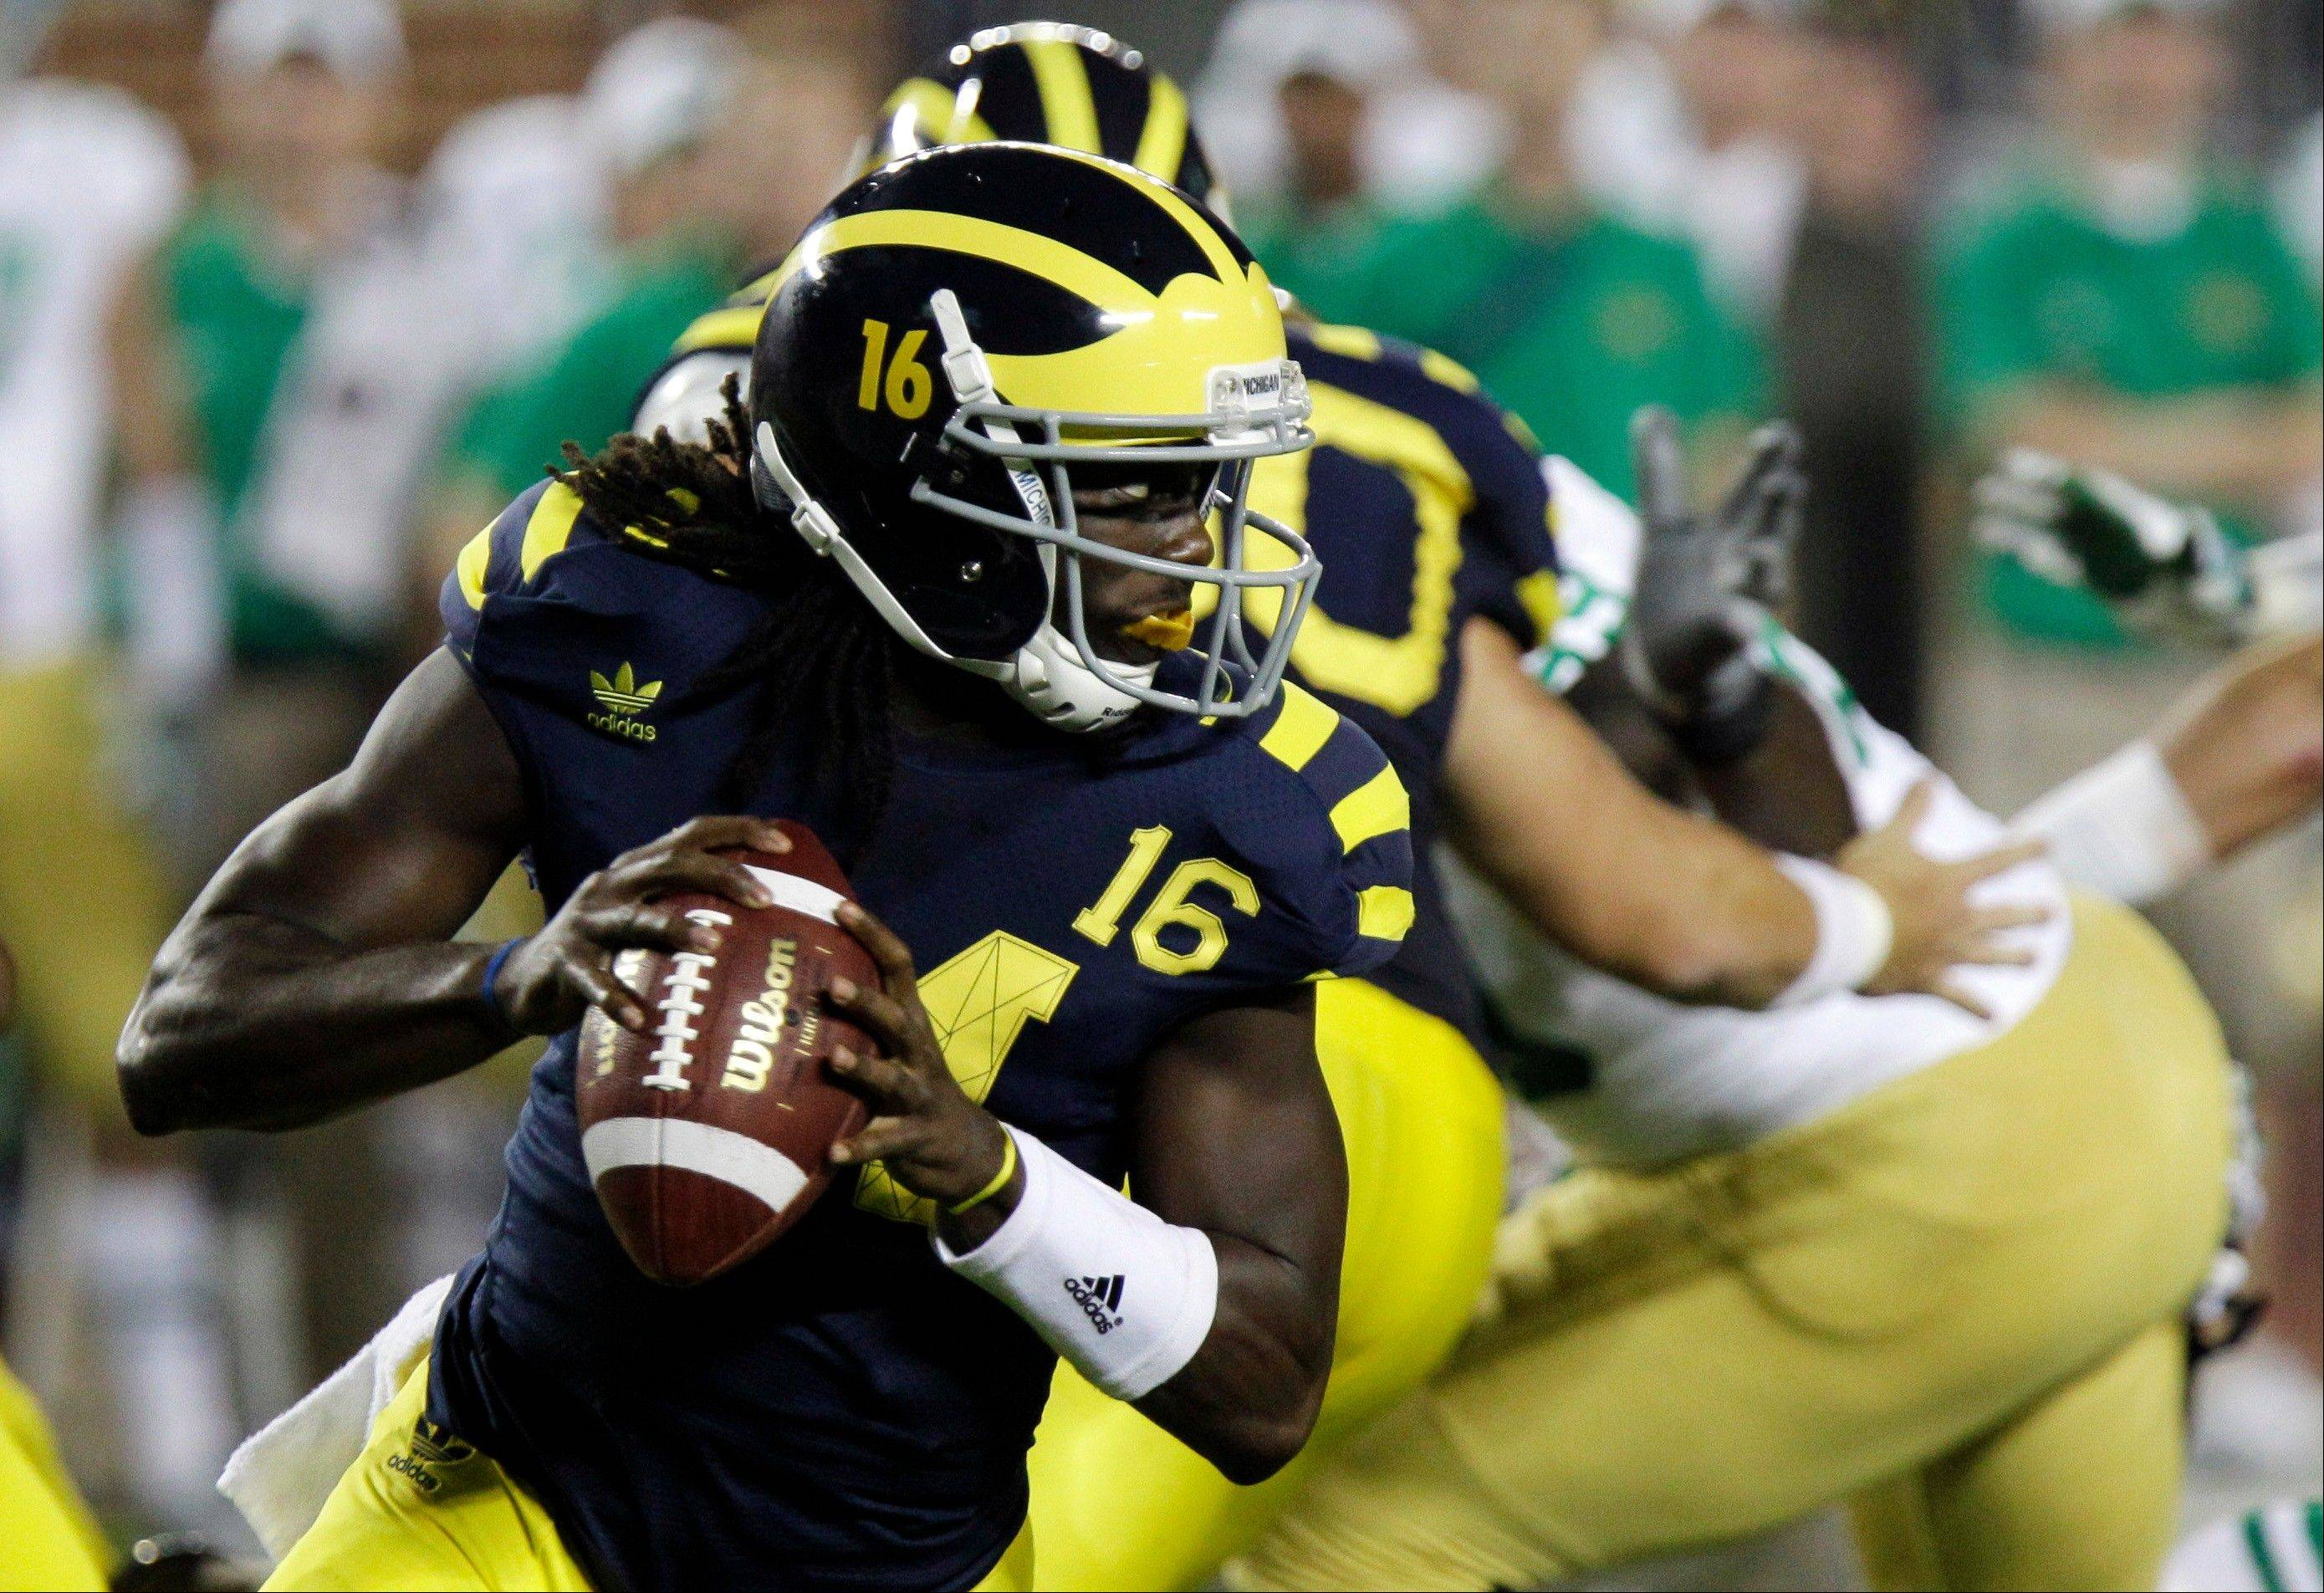 Michigan quarterback Denard Robinson has piled up 944 yards of total offense in his previous two games against Notre Dame.